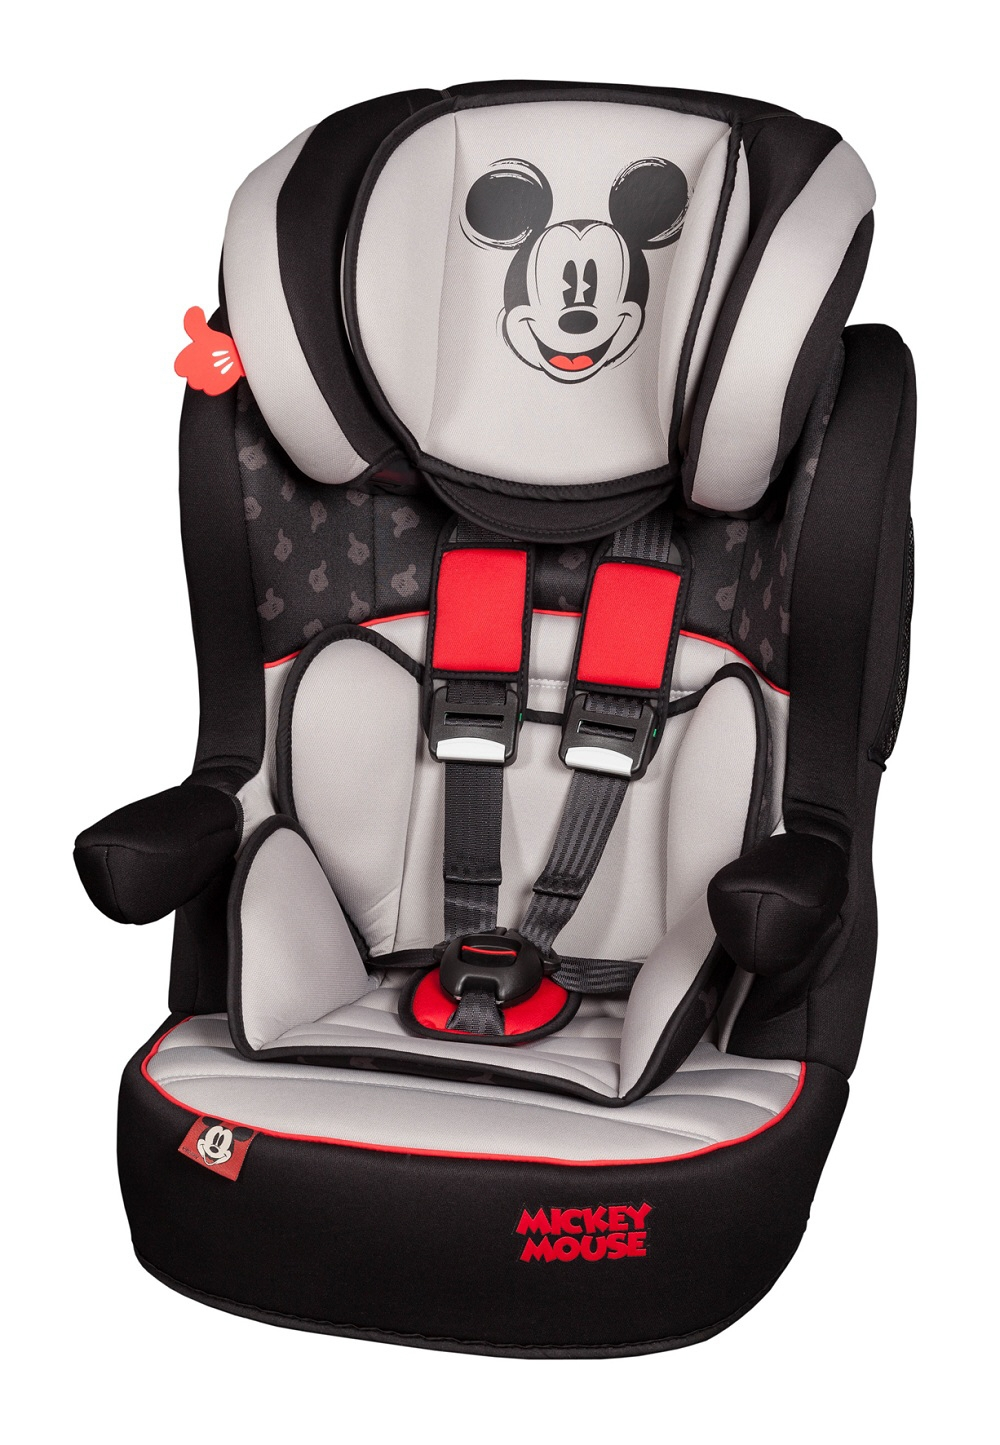 osann child car seat i max sp 2014 mickey mouse buy at. Black Bedroom Furniture Sets. Home Design Ideas